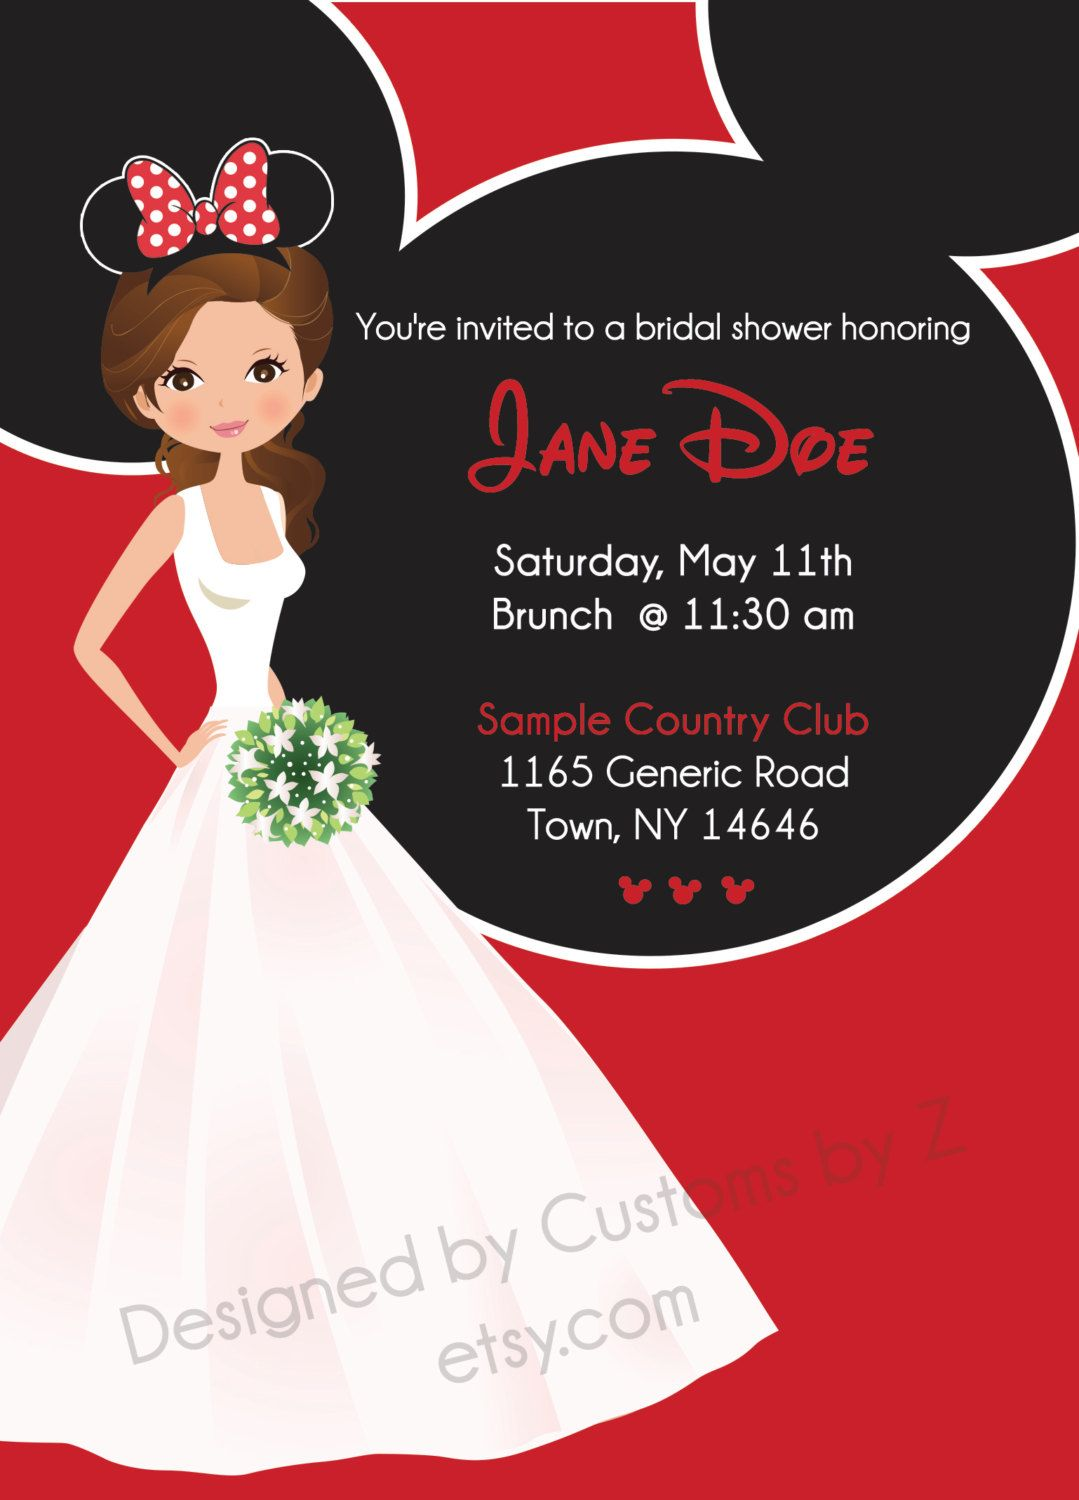 Minnie Mouse Theme Bridal Shower Invitation - Front and Back Disney ...